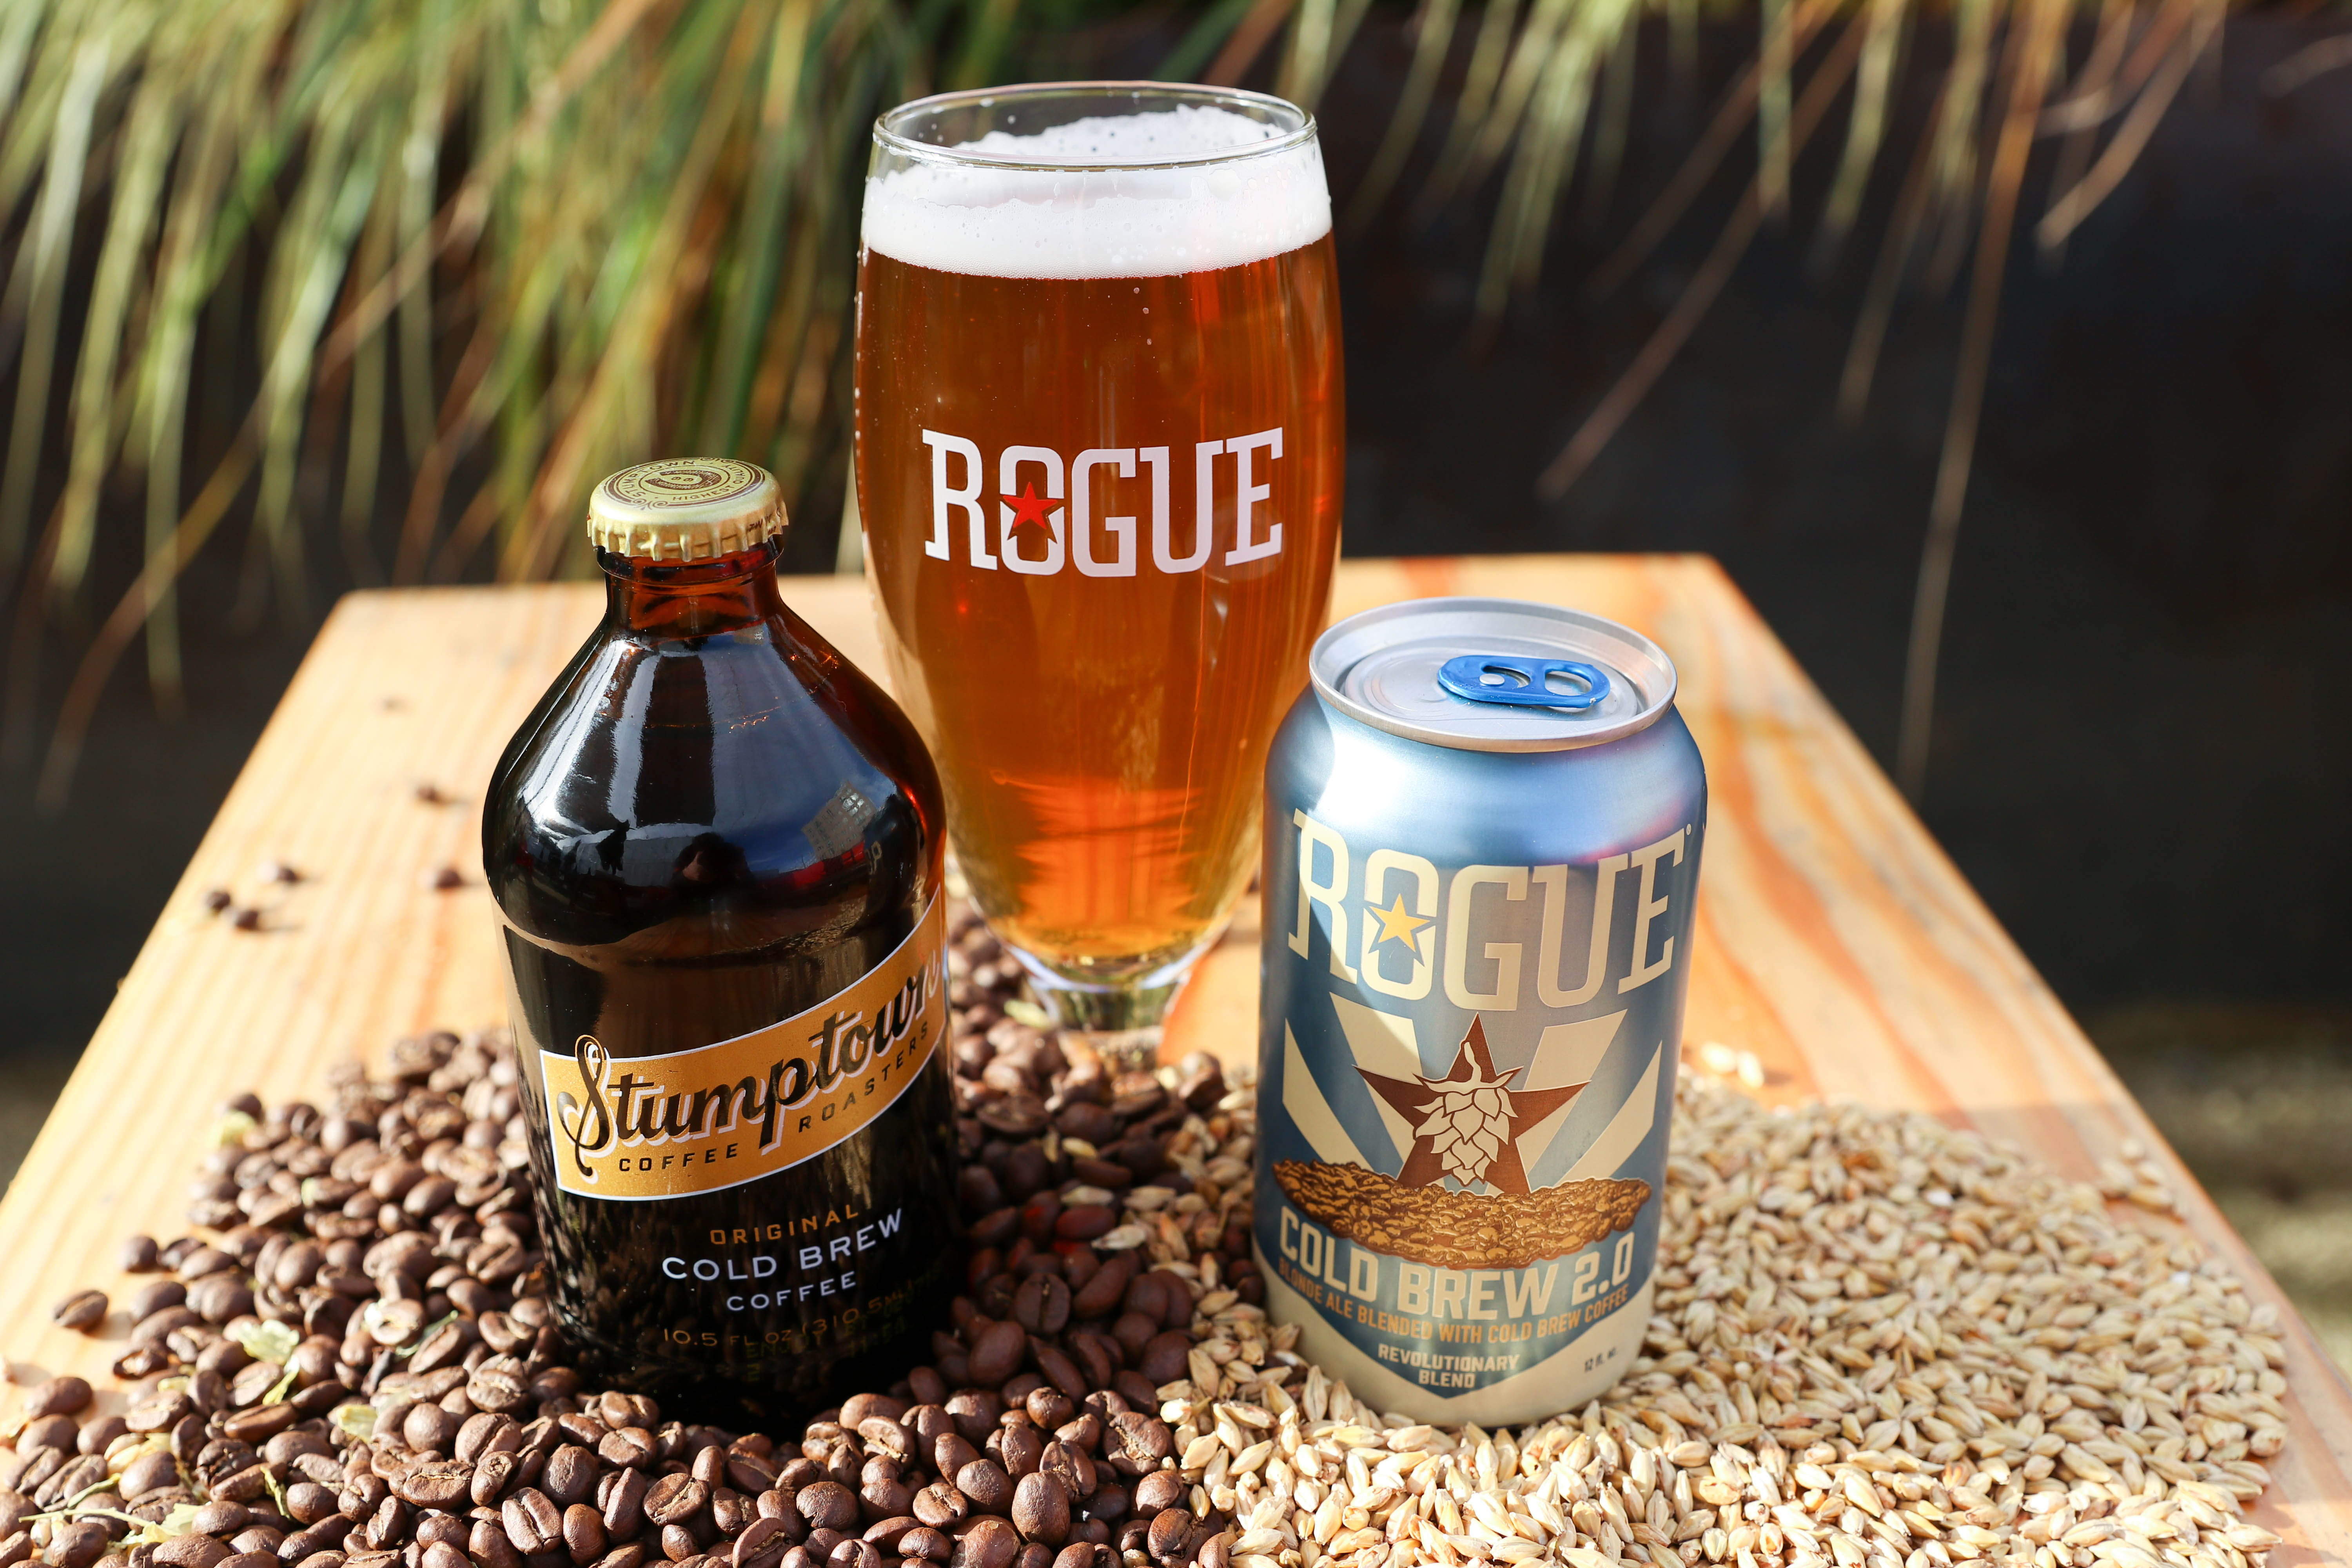 image of Rogue Cold Brew 2.0 and Stumptown Cold Brew Coffee courtesy of Rogue Ales